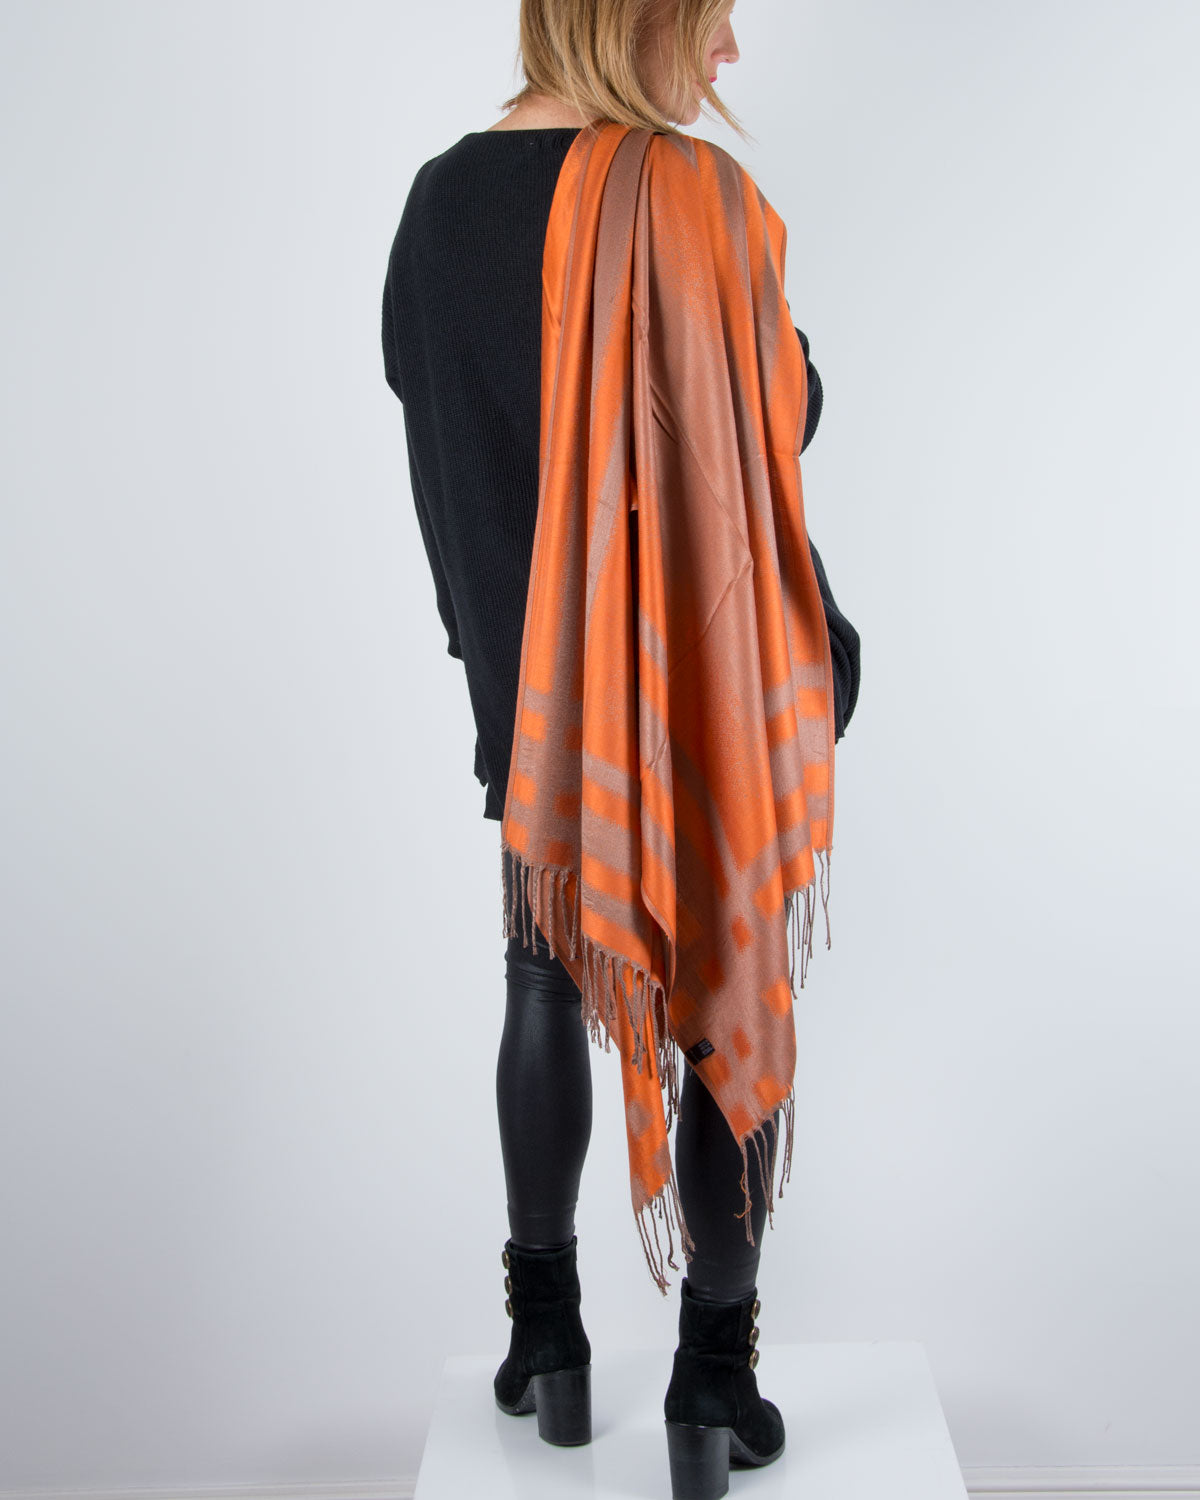 an image showing an orange and bronze pashmina